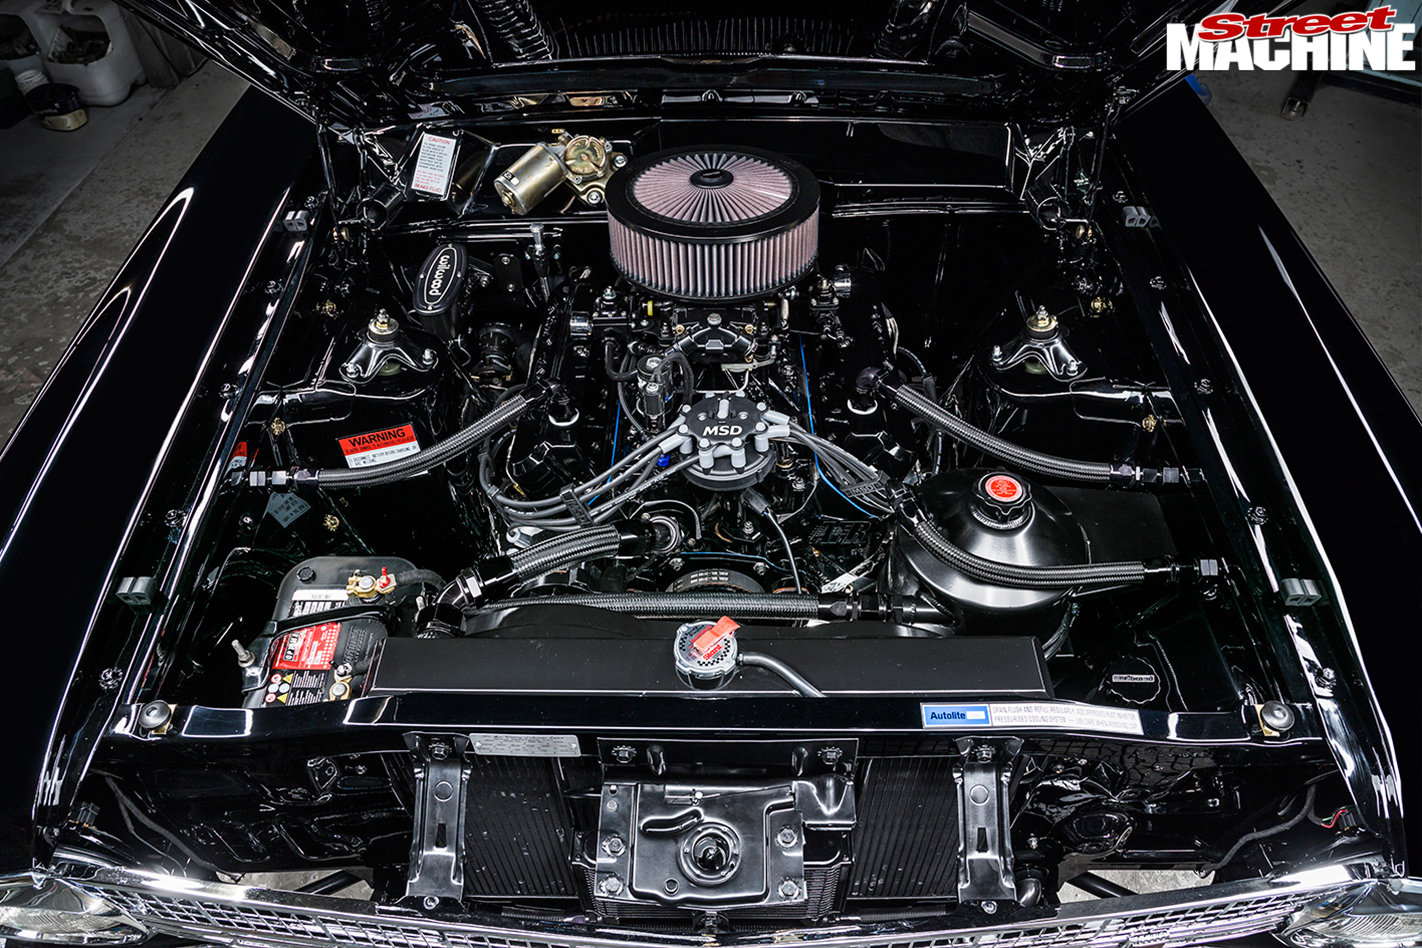 Ford -Falcon -XR-engine -bay